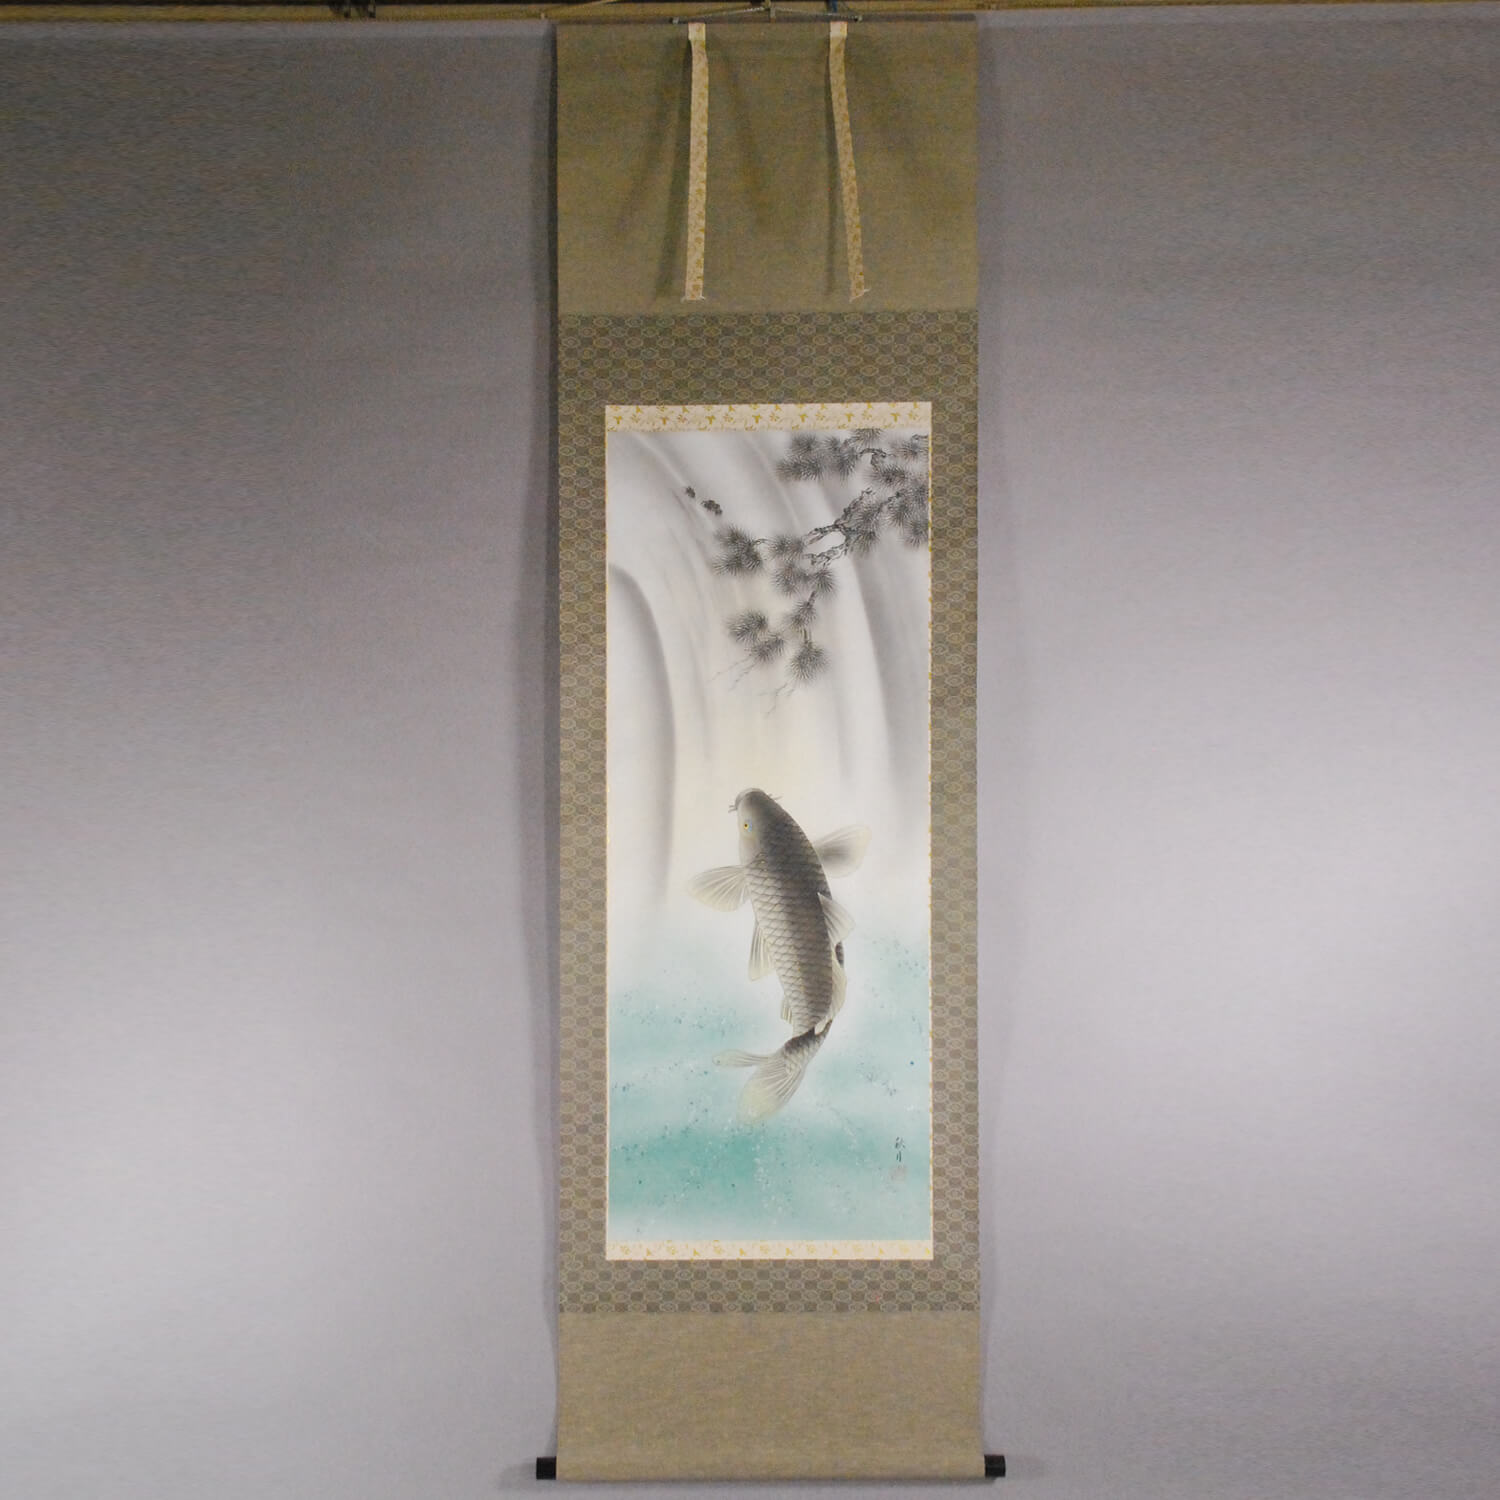 Koi Fish Shooting up a Waterfall / Shuugetsu Kawai